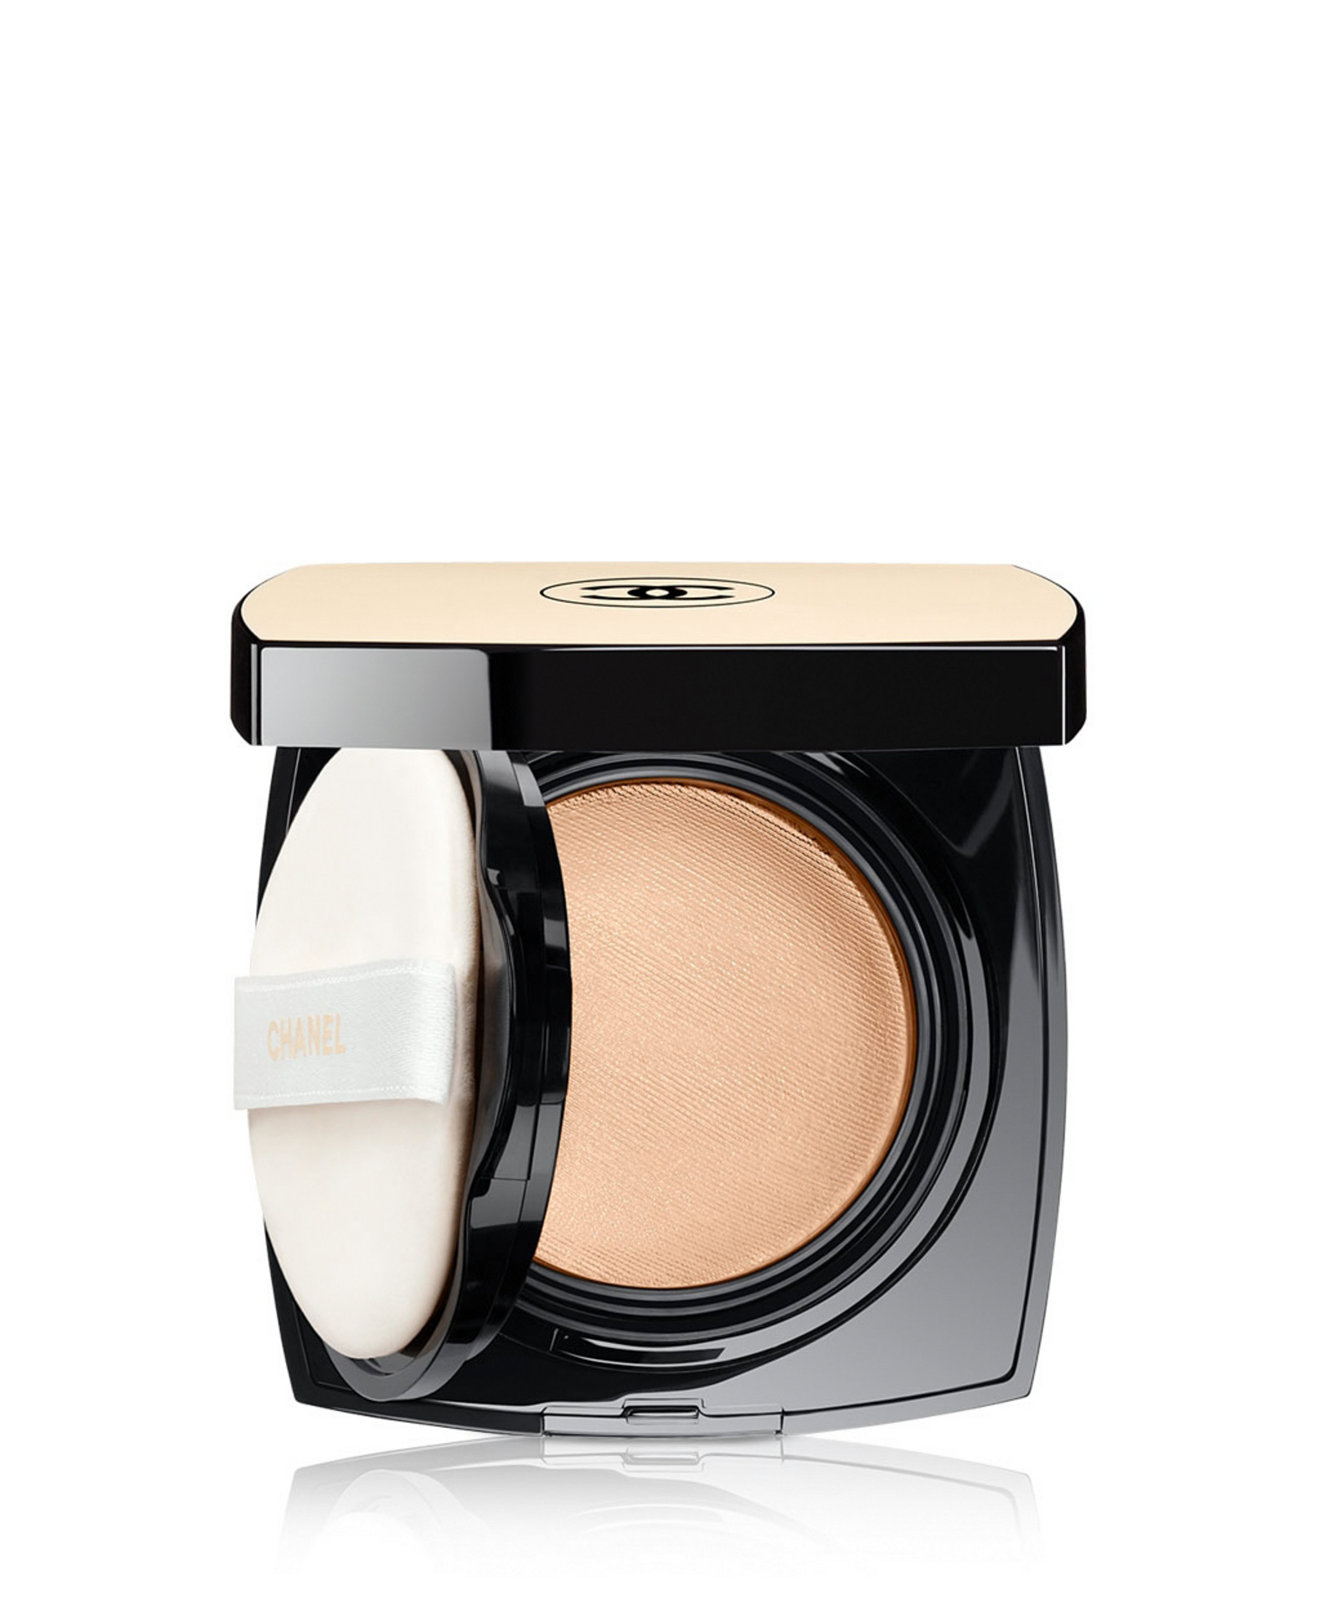 Colour Care Foundation Price - Chanel les beiges gel touch healthy glow tint broad spectrum spf 15 sunscreen